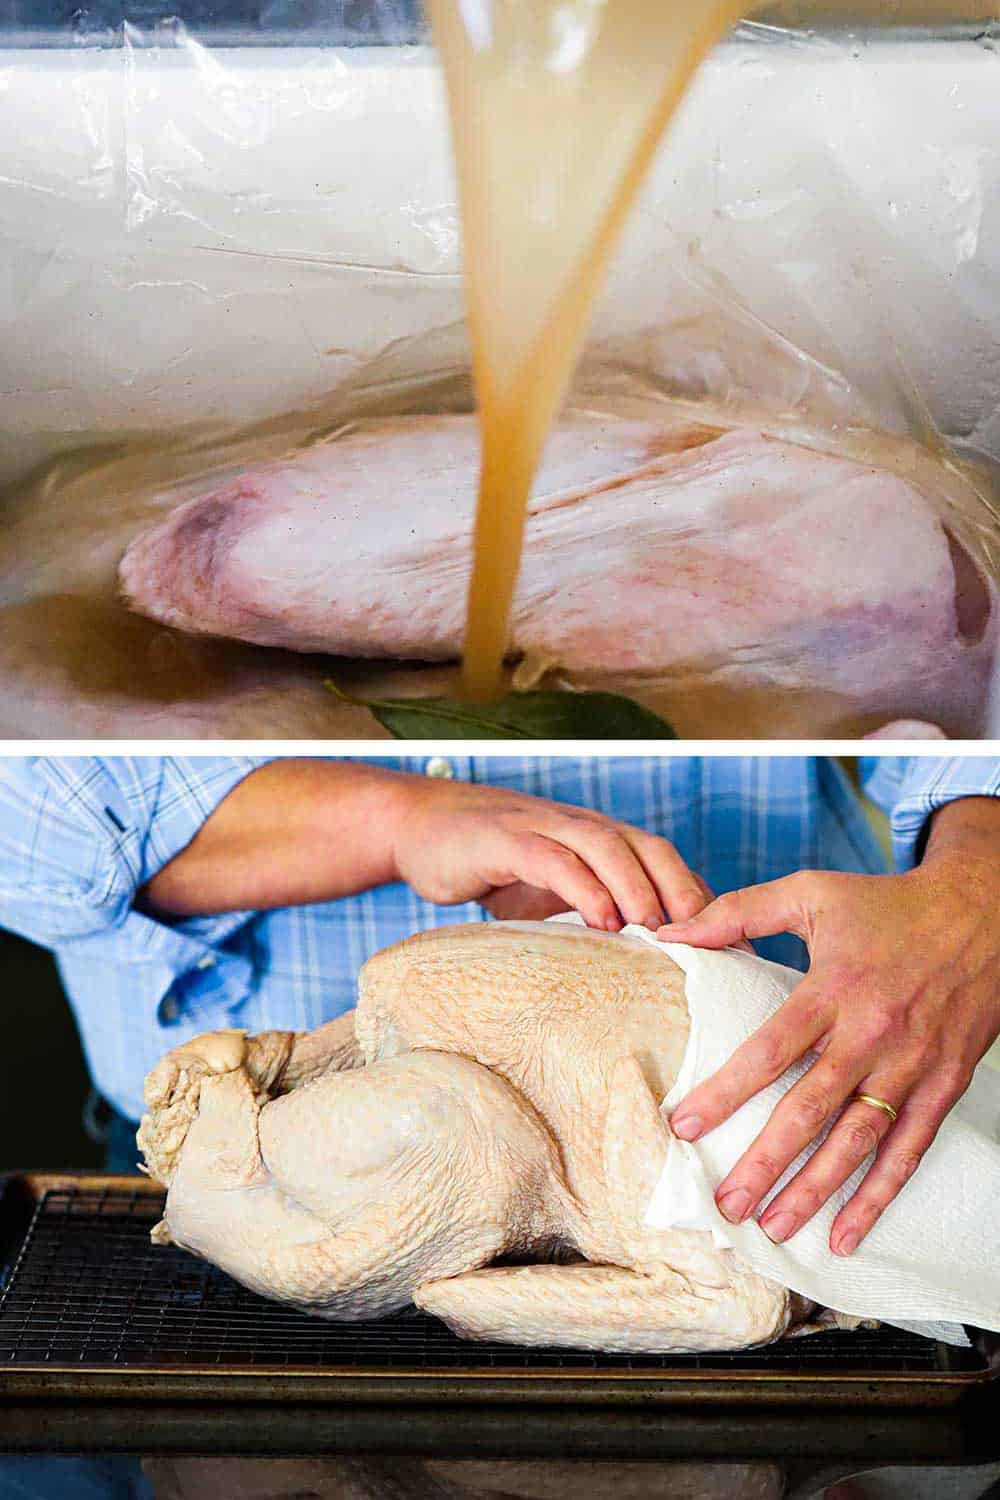 Brine pouring onto a fresh turkey in a brine bag in a cooler and then a person patting the turkey dry with paper towels.